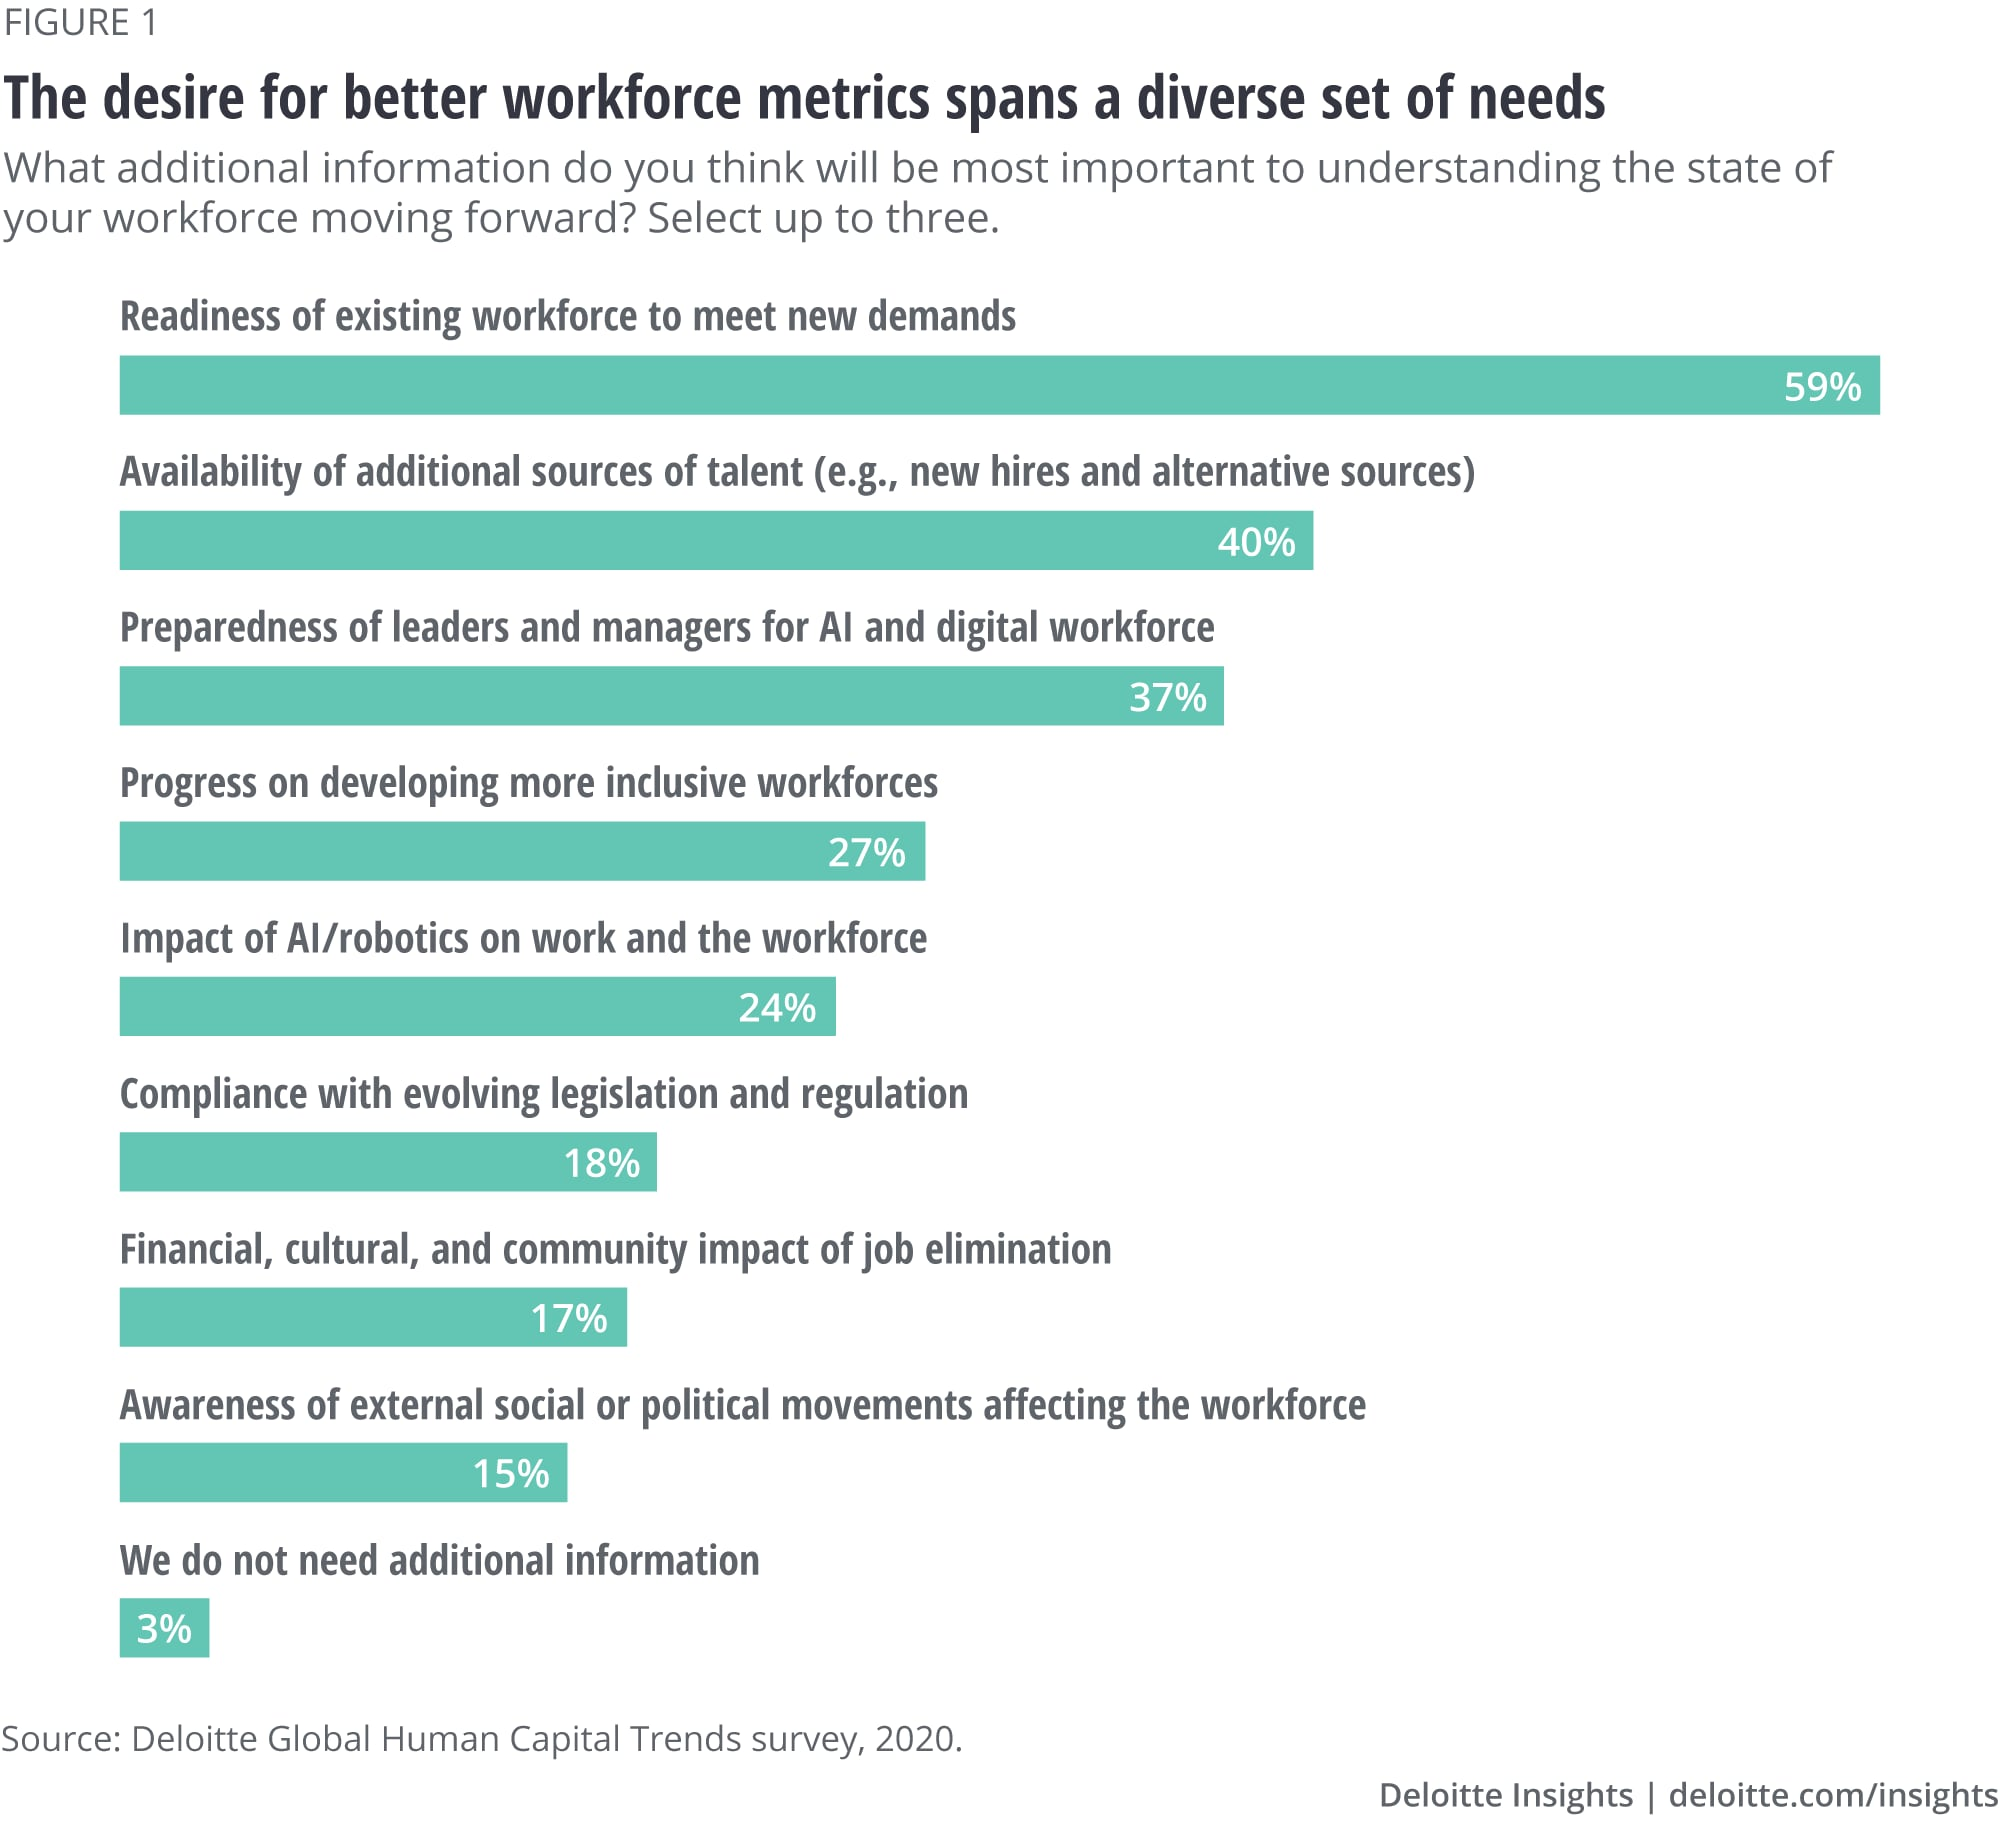 The desire for better workforce metrics spans a diverse set of needs